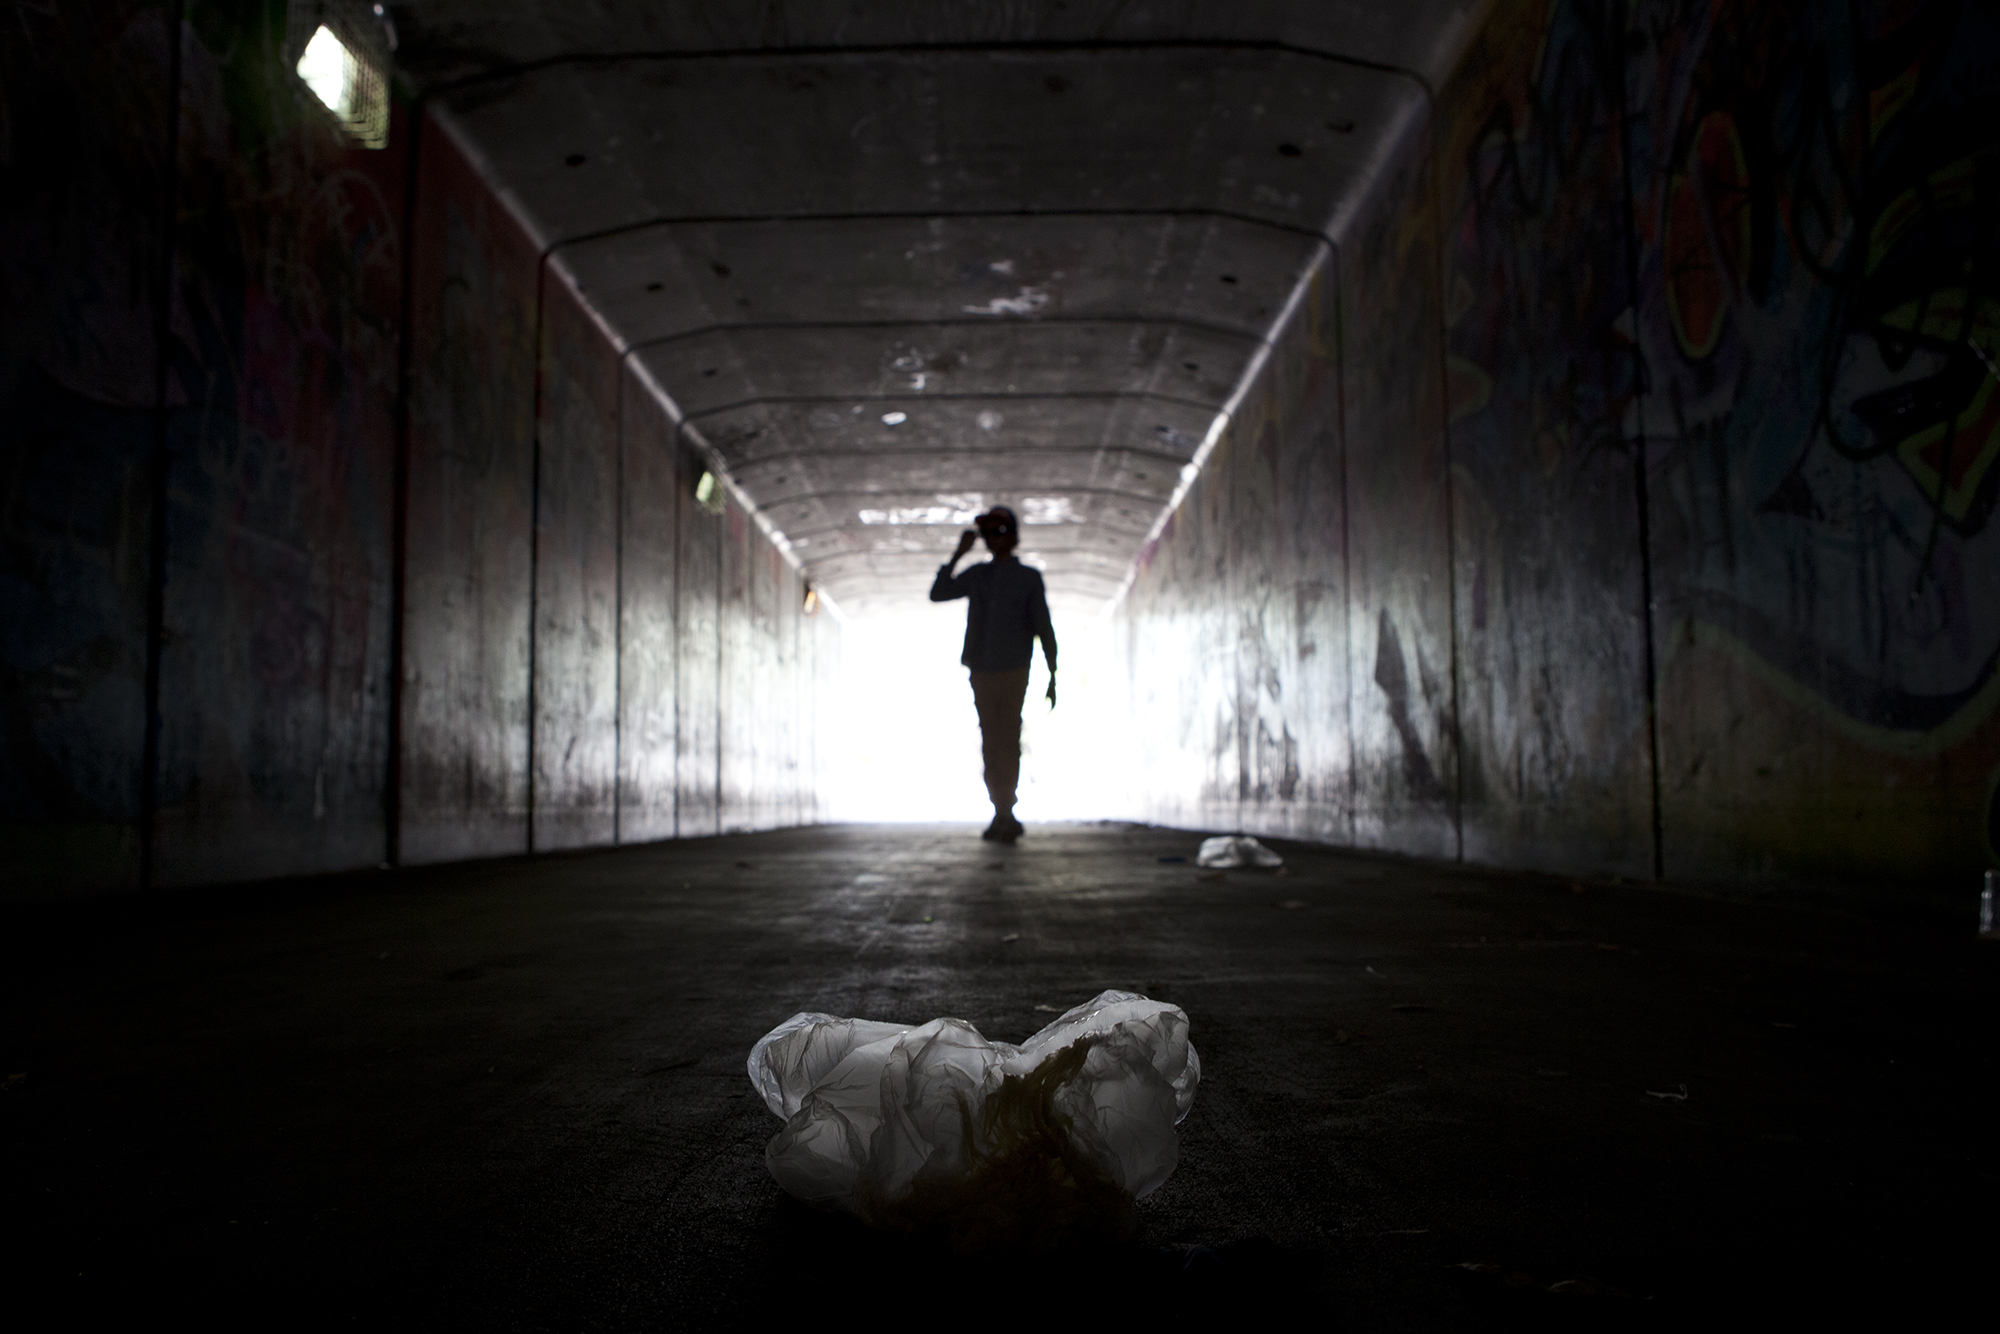 A dark tunnel on the outskirts of Rockhampton, littered with scrunched up plastic bags which have been filled with glue or paint used for sniffing.